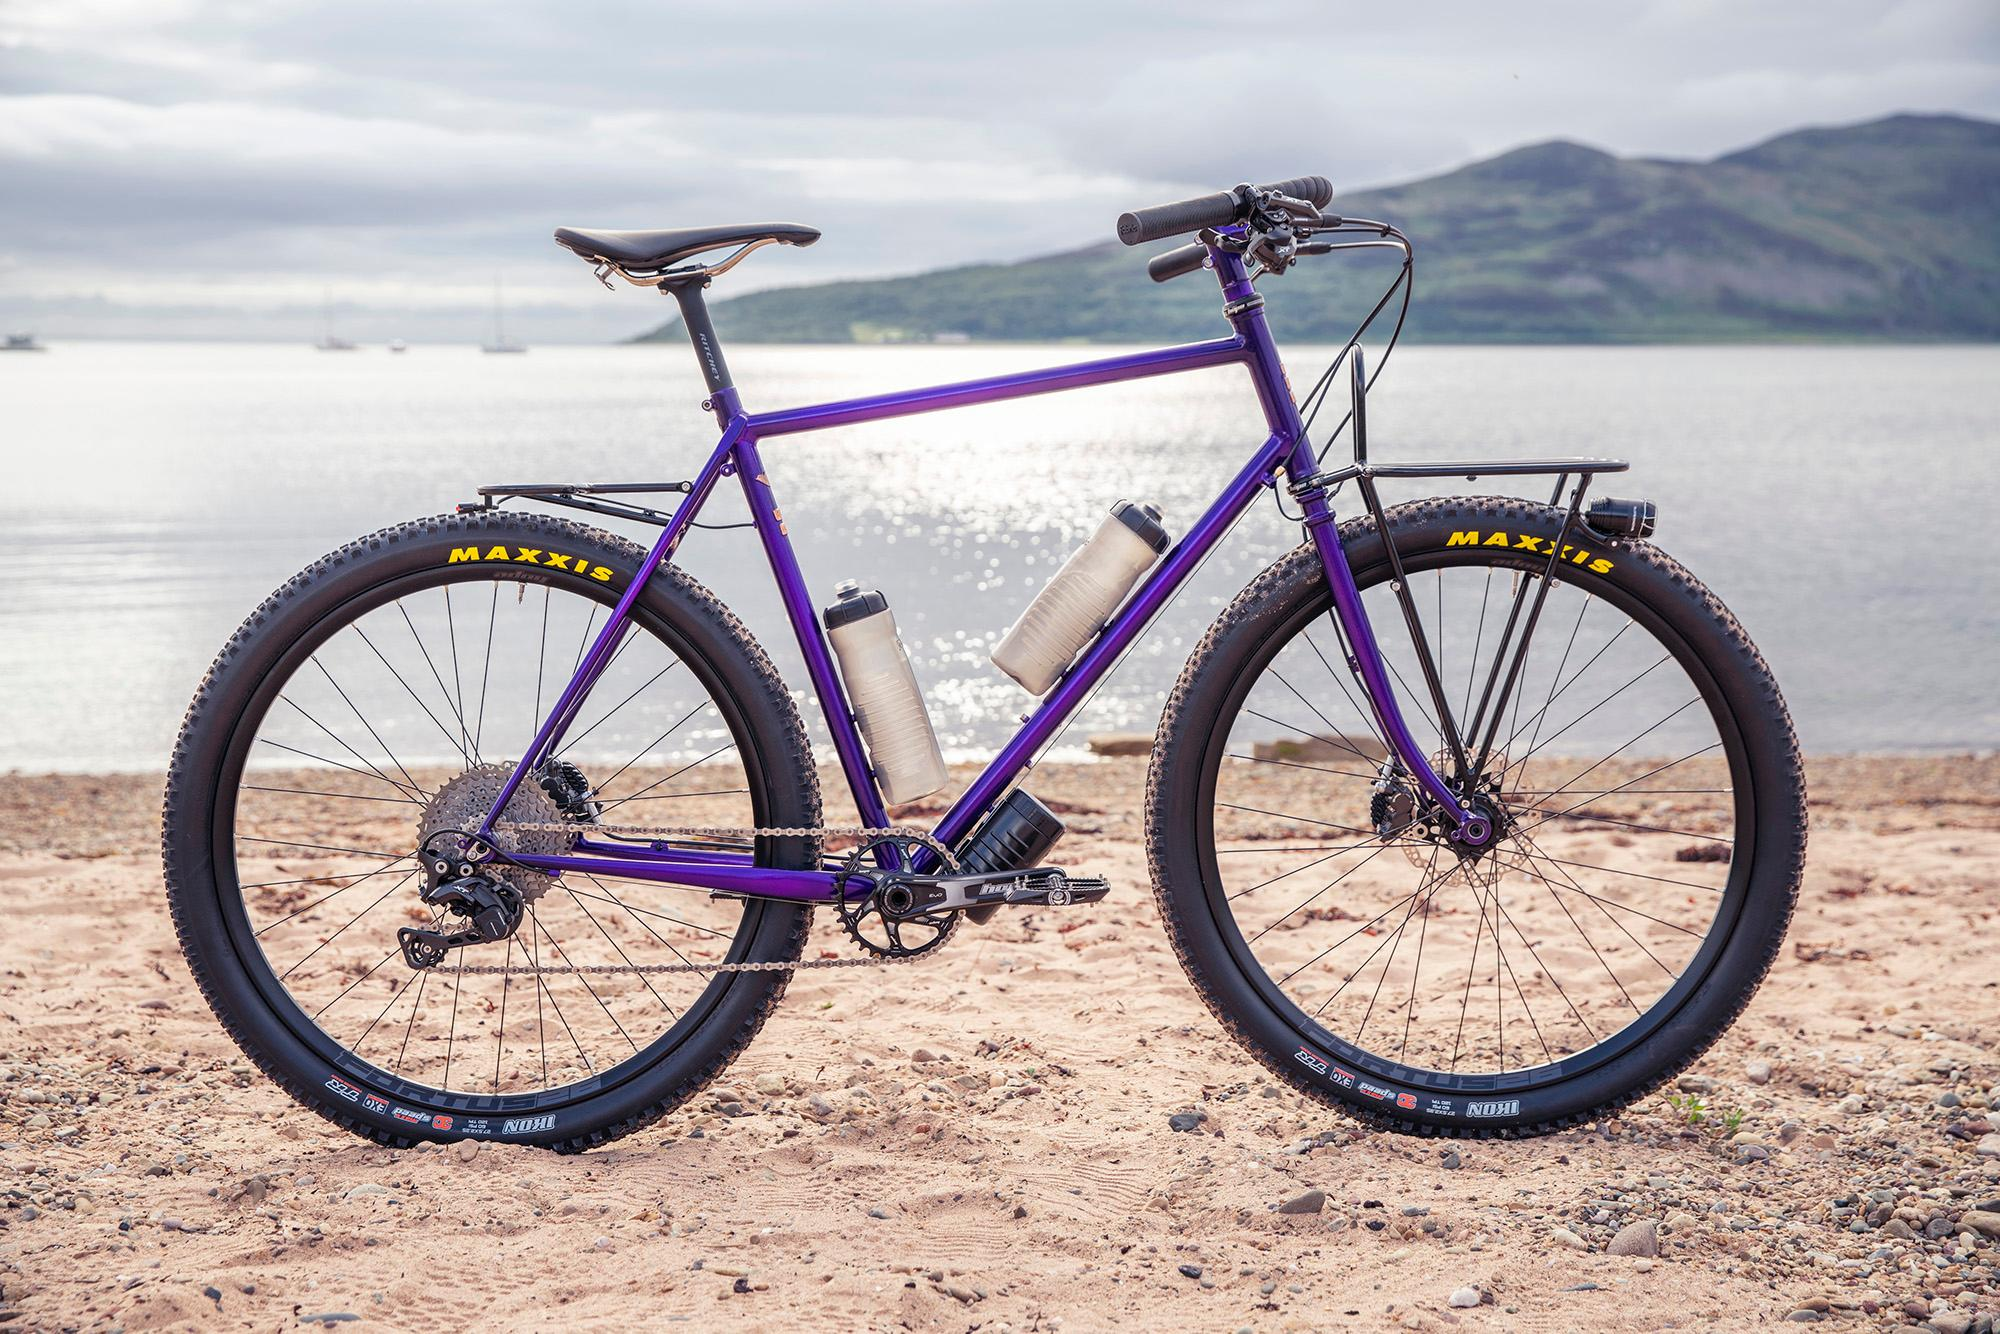 Grinduro custom build by Clandestine.Grinduro, Isle of Arran, Scotland, 13 July 2019